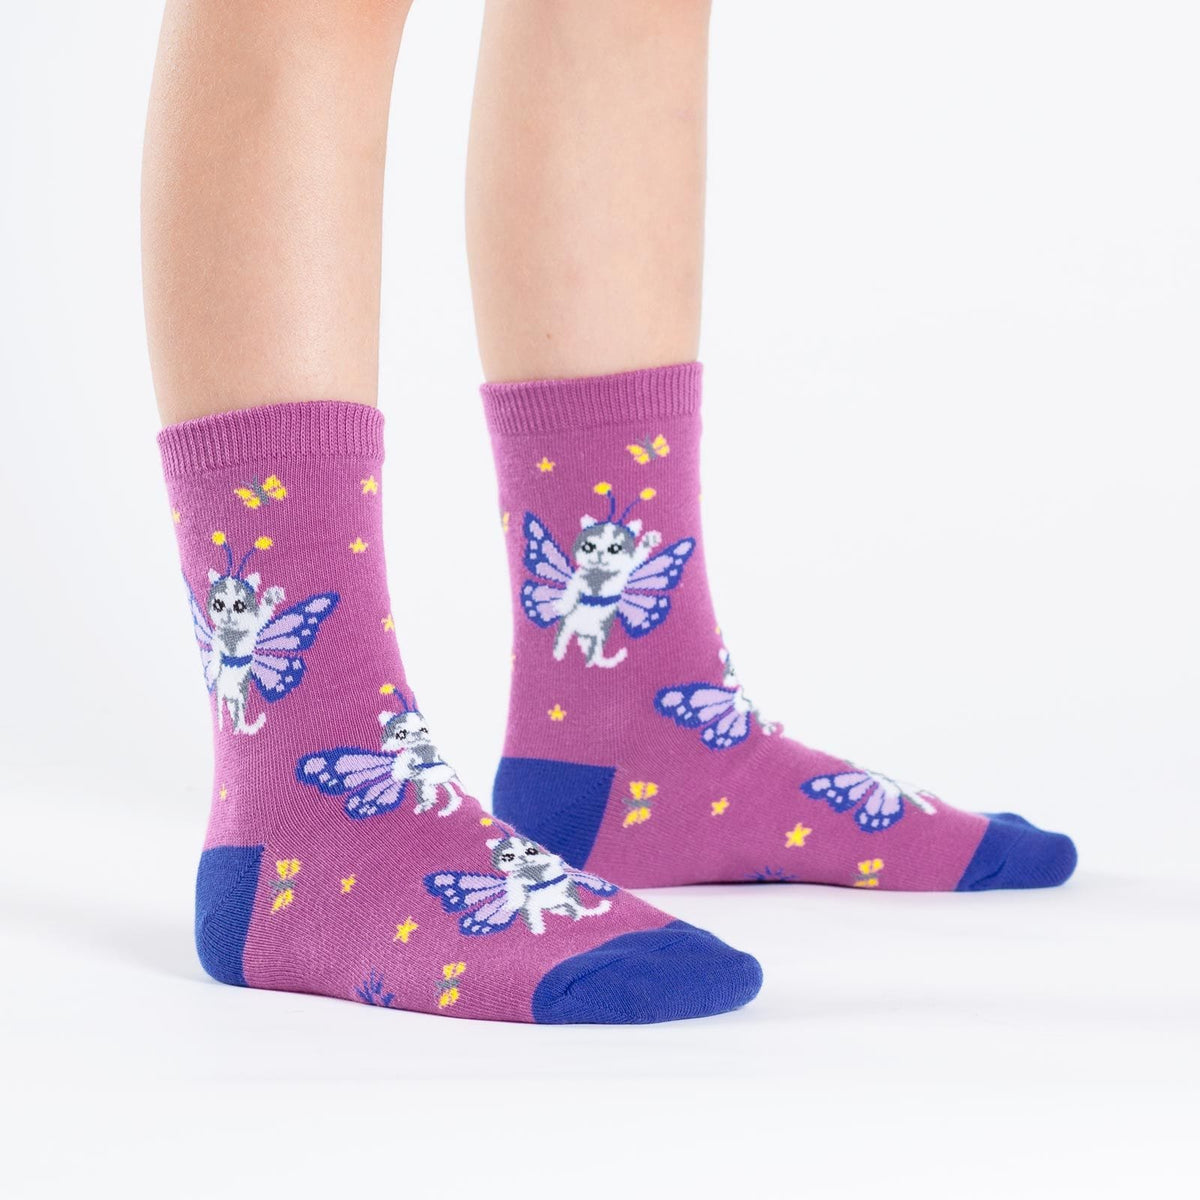 Catterfly Youth Crew Socks pink